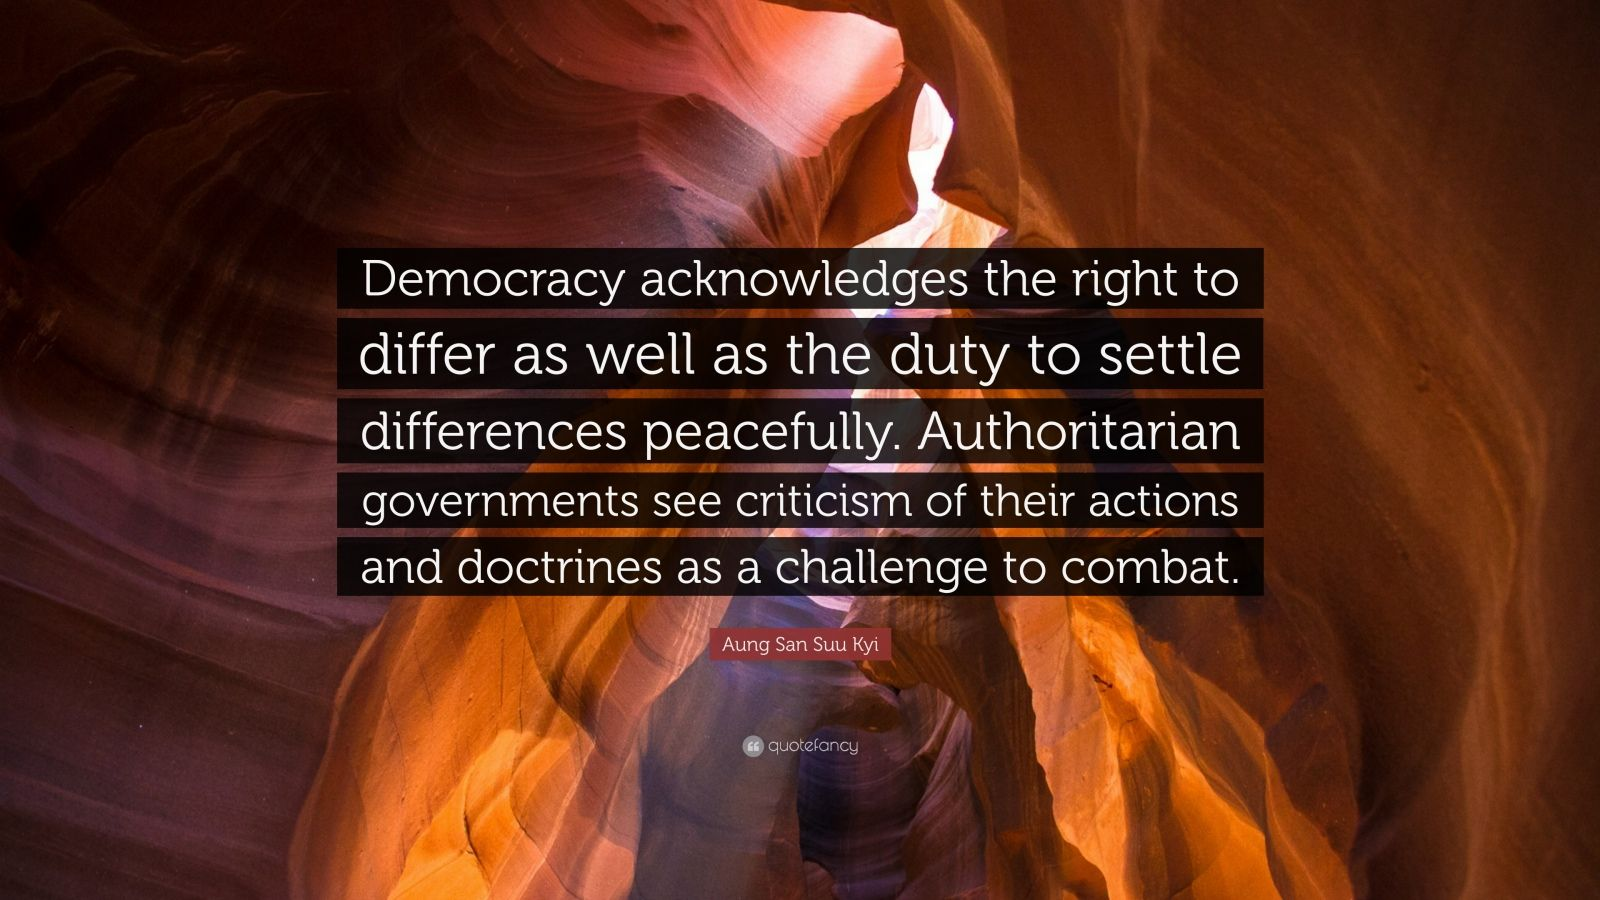 """Aung San Suu Kyi Quote: """"Democracy acknowledges the right to differ as well as the duty to settle differences peacefully. Authoritarian governments see criticism of their actions and doctrines as a challenge to combat."""""""